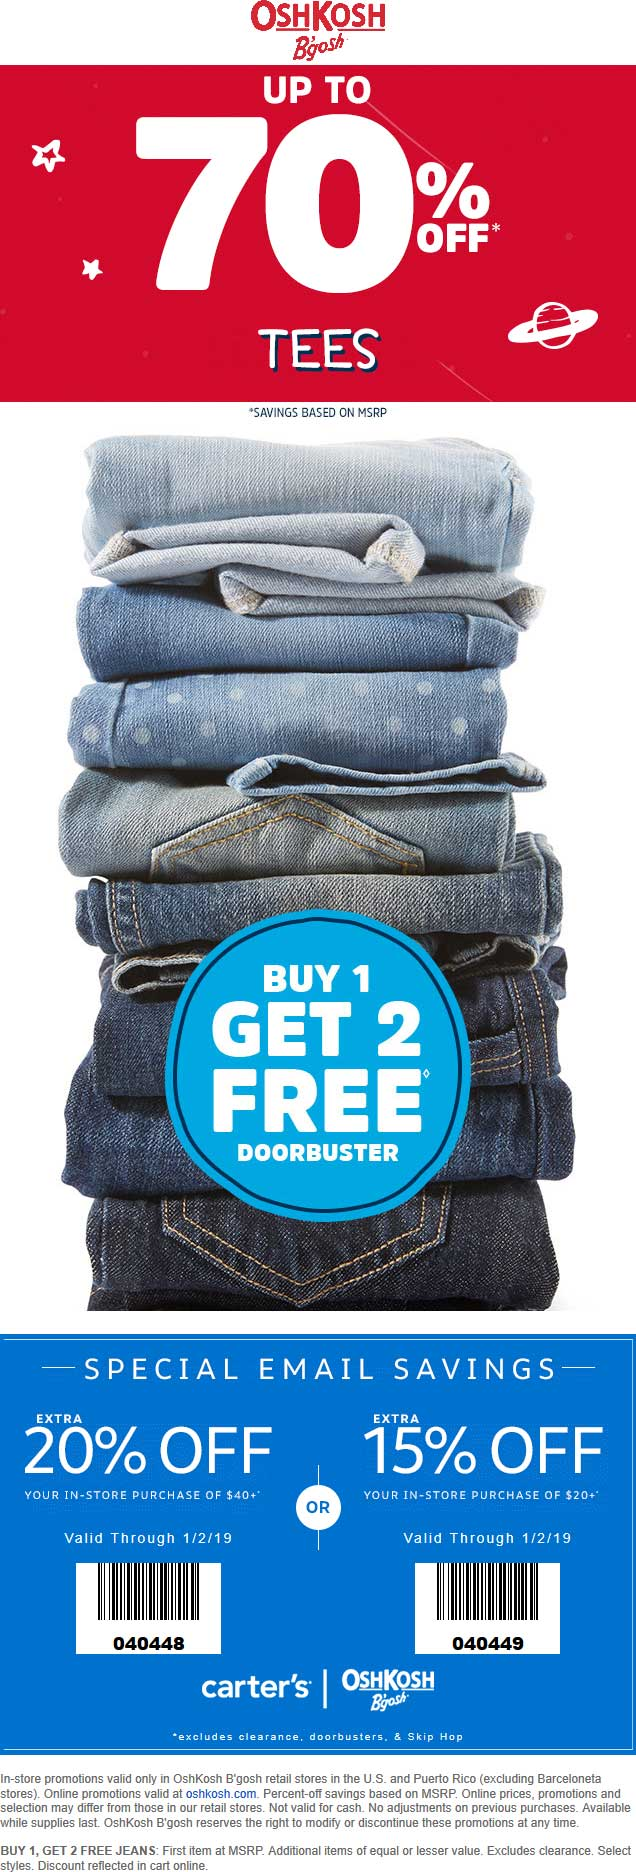 OshKosh Bgosh Coupon May 2019 3-for-1 on jeans + 15-20% off at OshKosh Bgosh